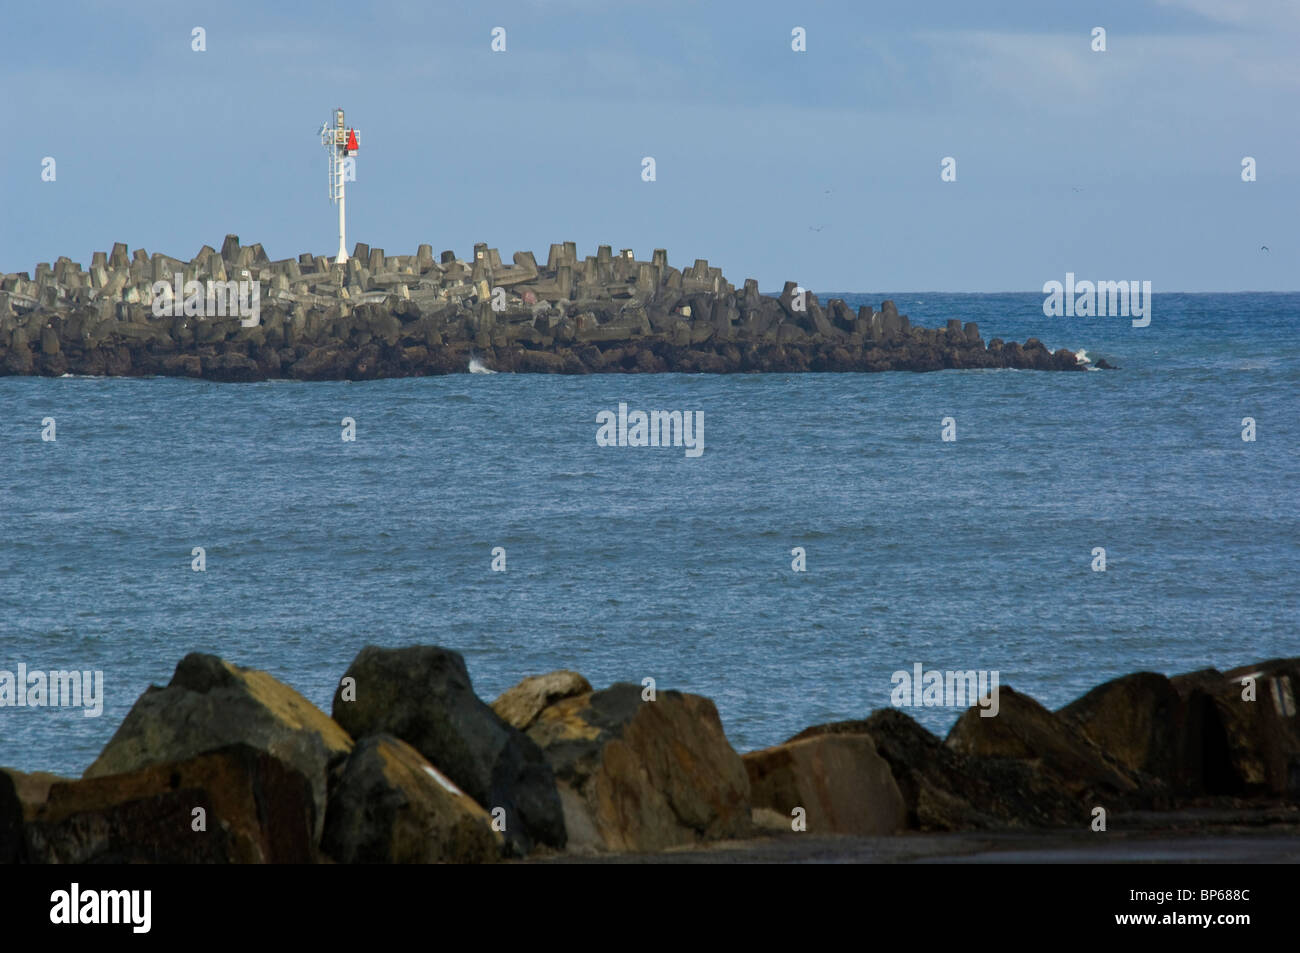 Red Harbor Entrance Marker on the South Jetty, at the channel into Humboldt Bay, California Stock Photo